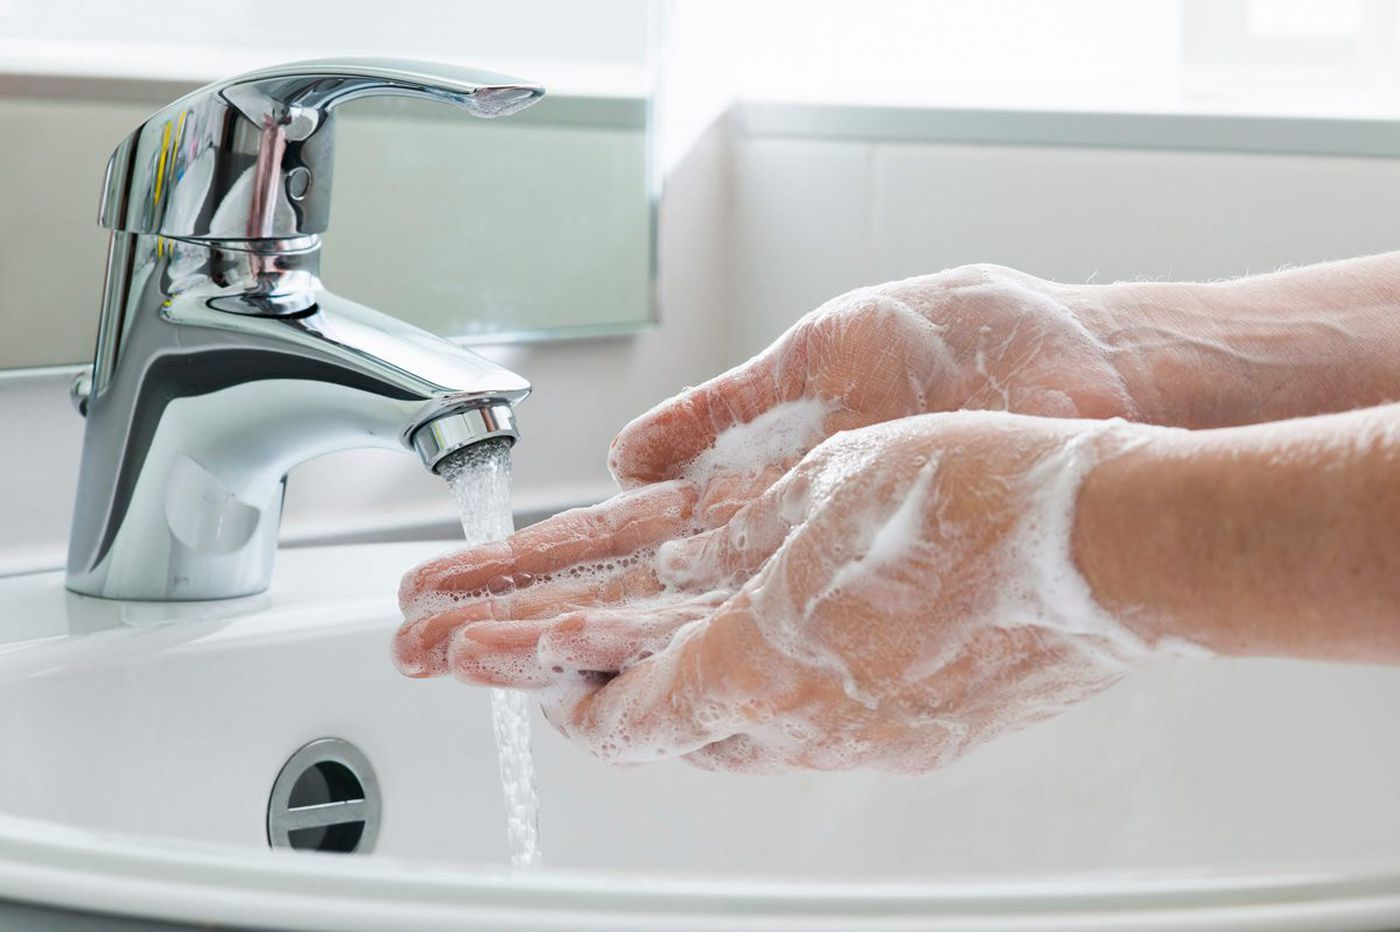 You're washing your hands wrong - and so are the millions of holiday travelers you'll encounter